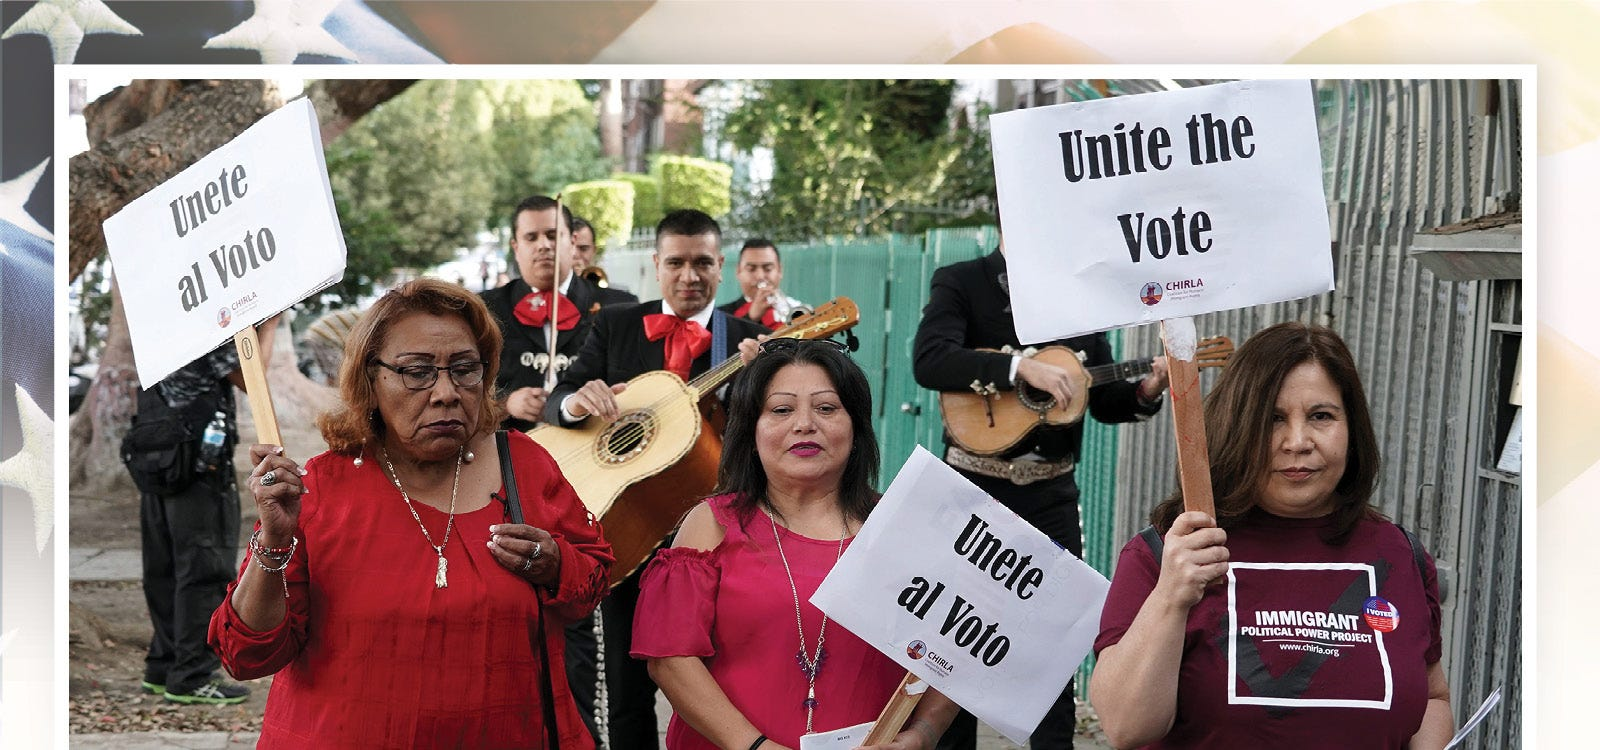 """Latino voters carry signs that read """"Unite the Vote"""" as they are serenaded by mariachis on their way to their polling station to cast their ballots in the 2018 midterm general election in Los Angeles, California, Nov. 6, 2018."""